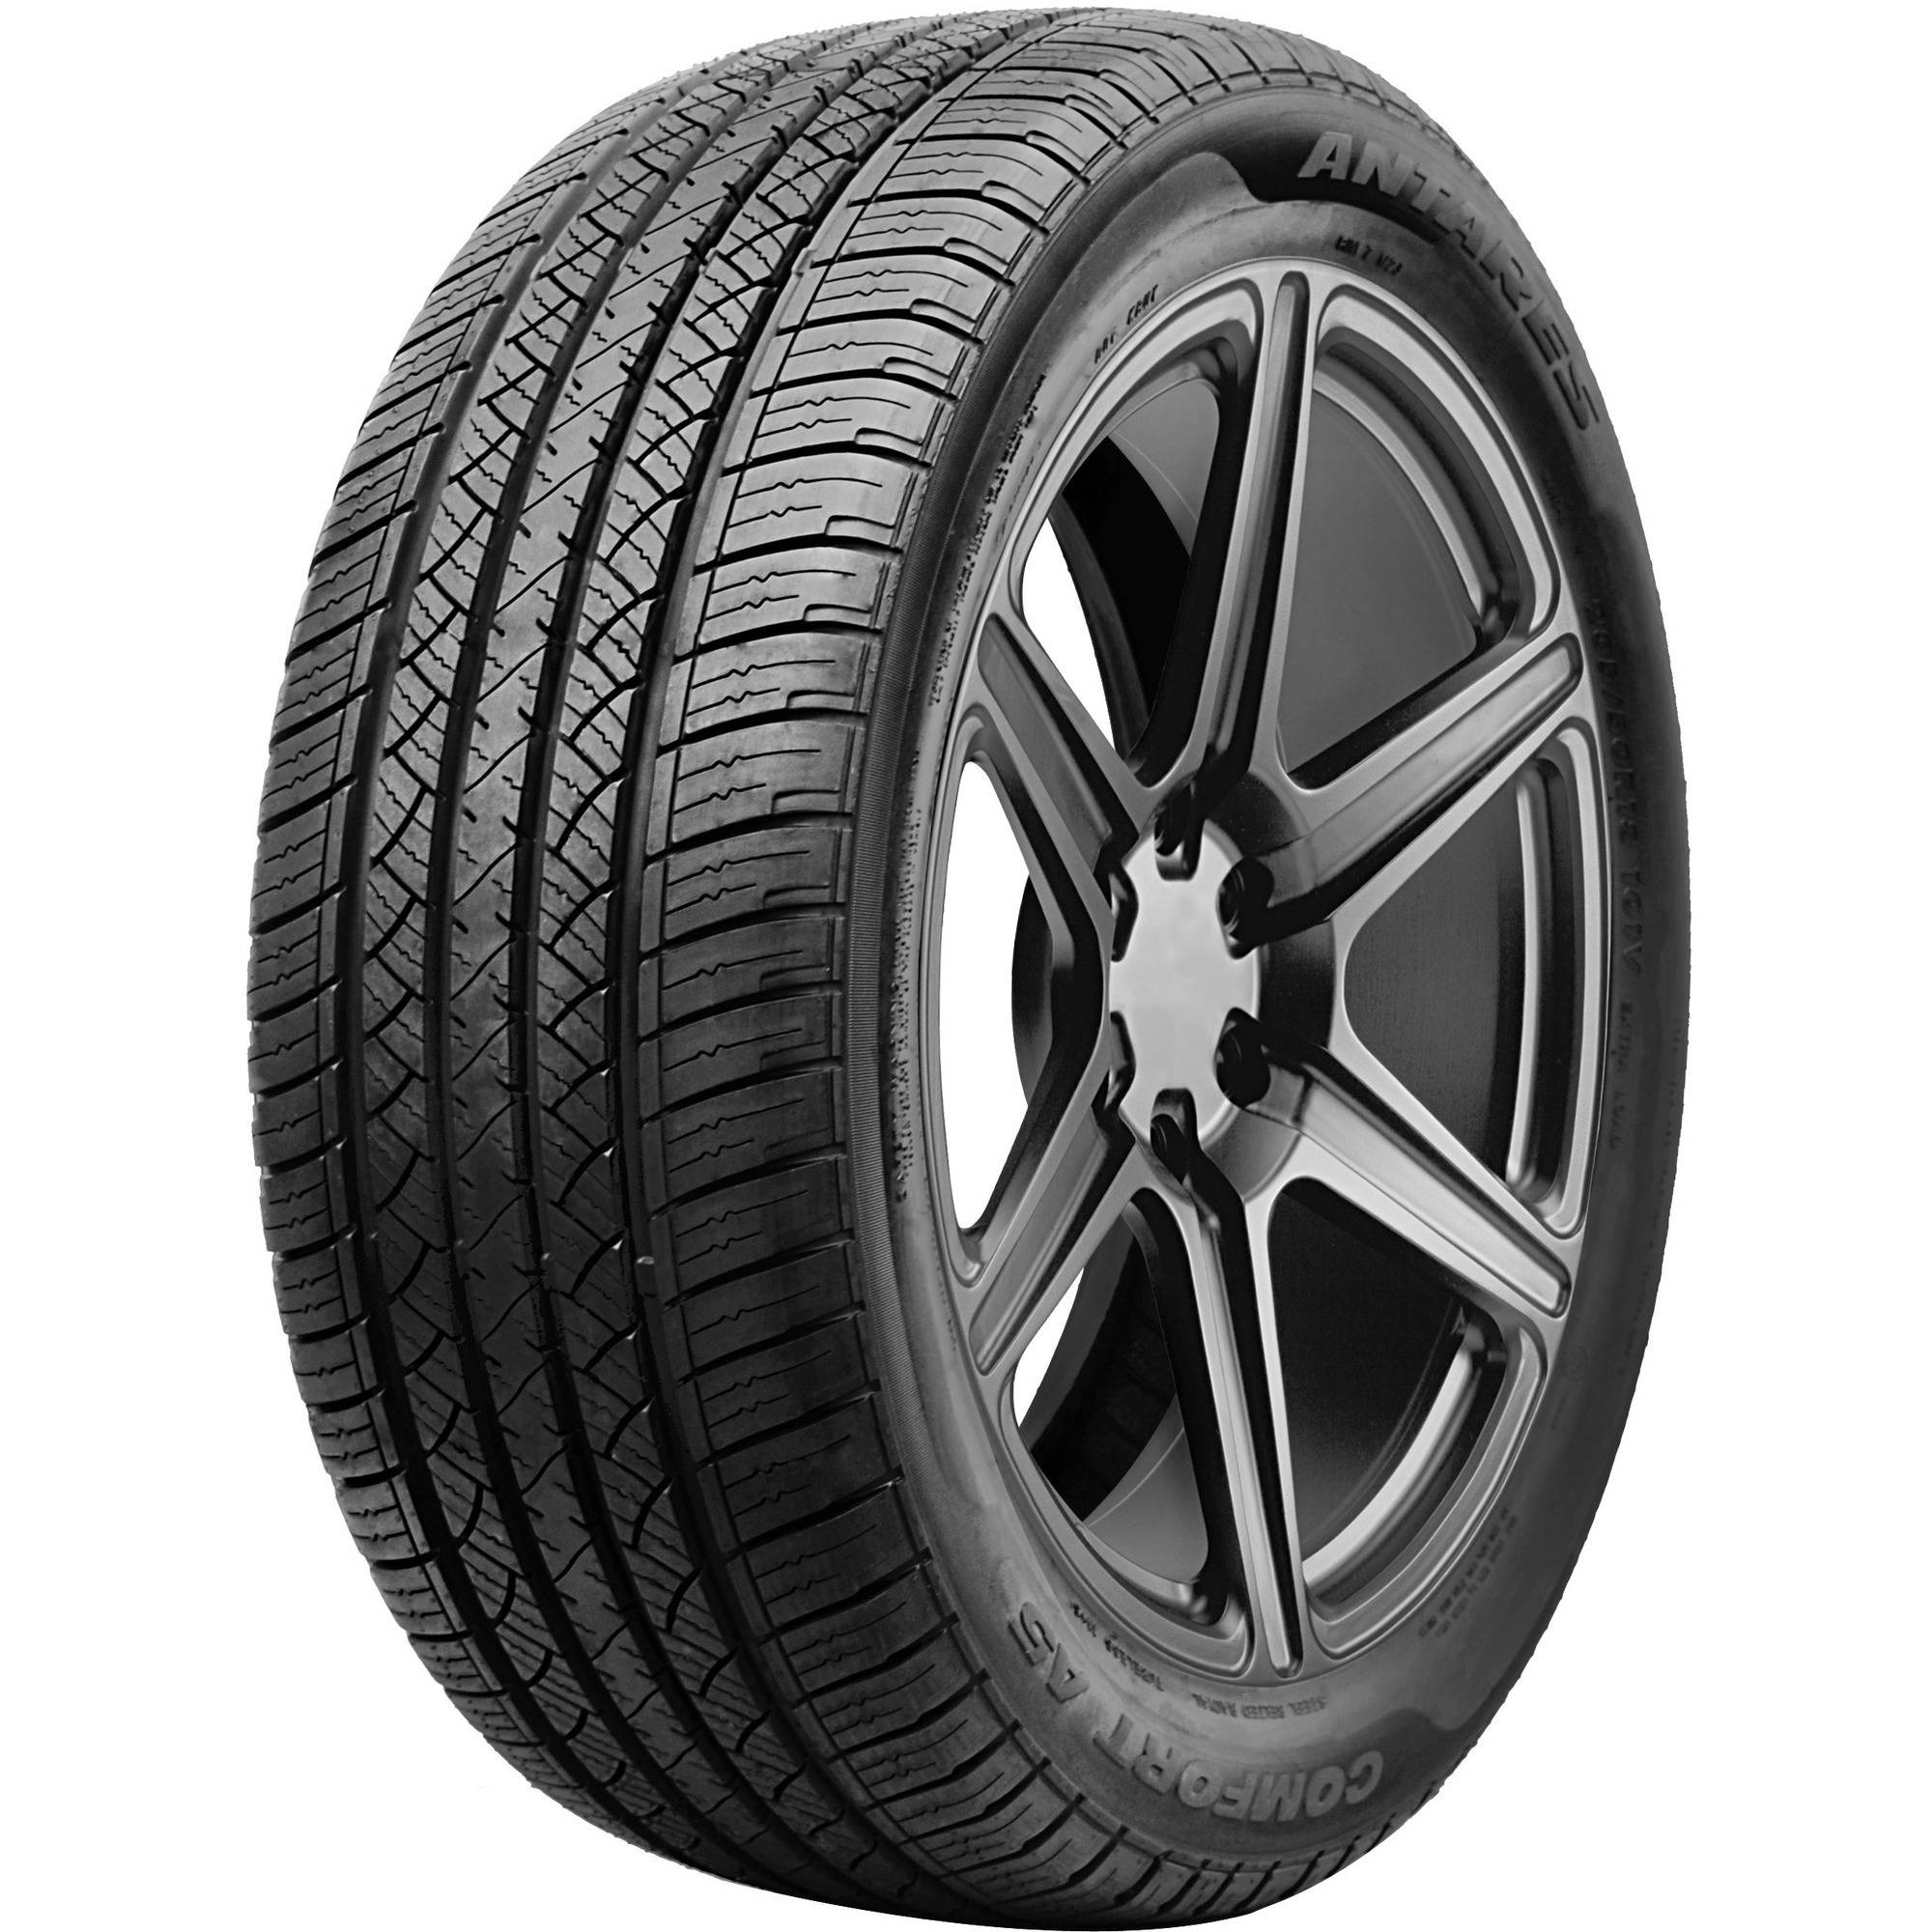 Antares Comfort A5 225 65R16 100H Tire by Antares